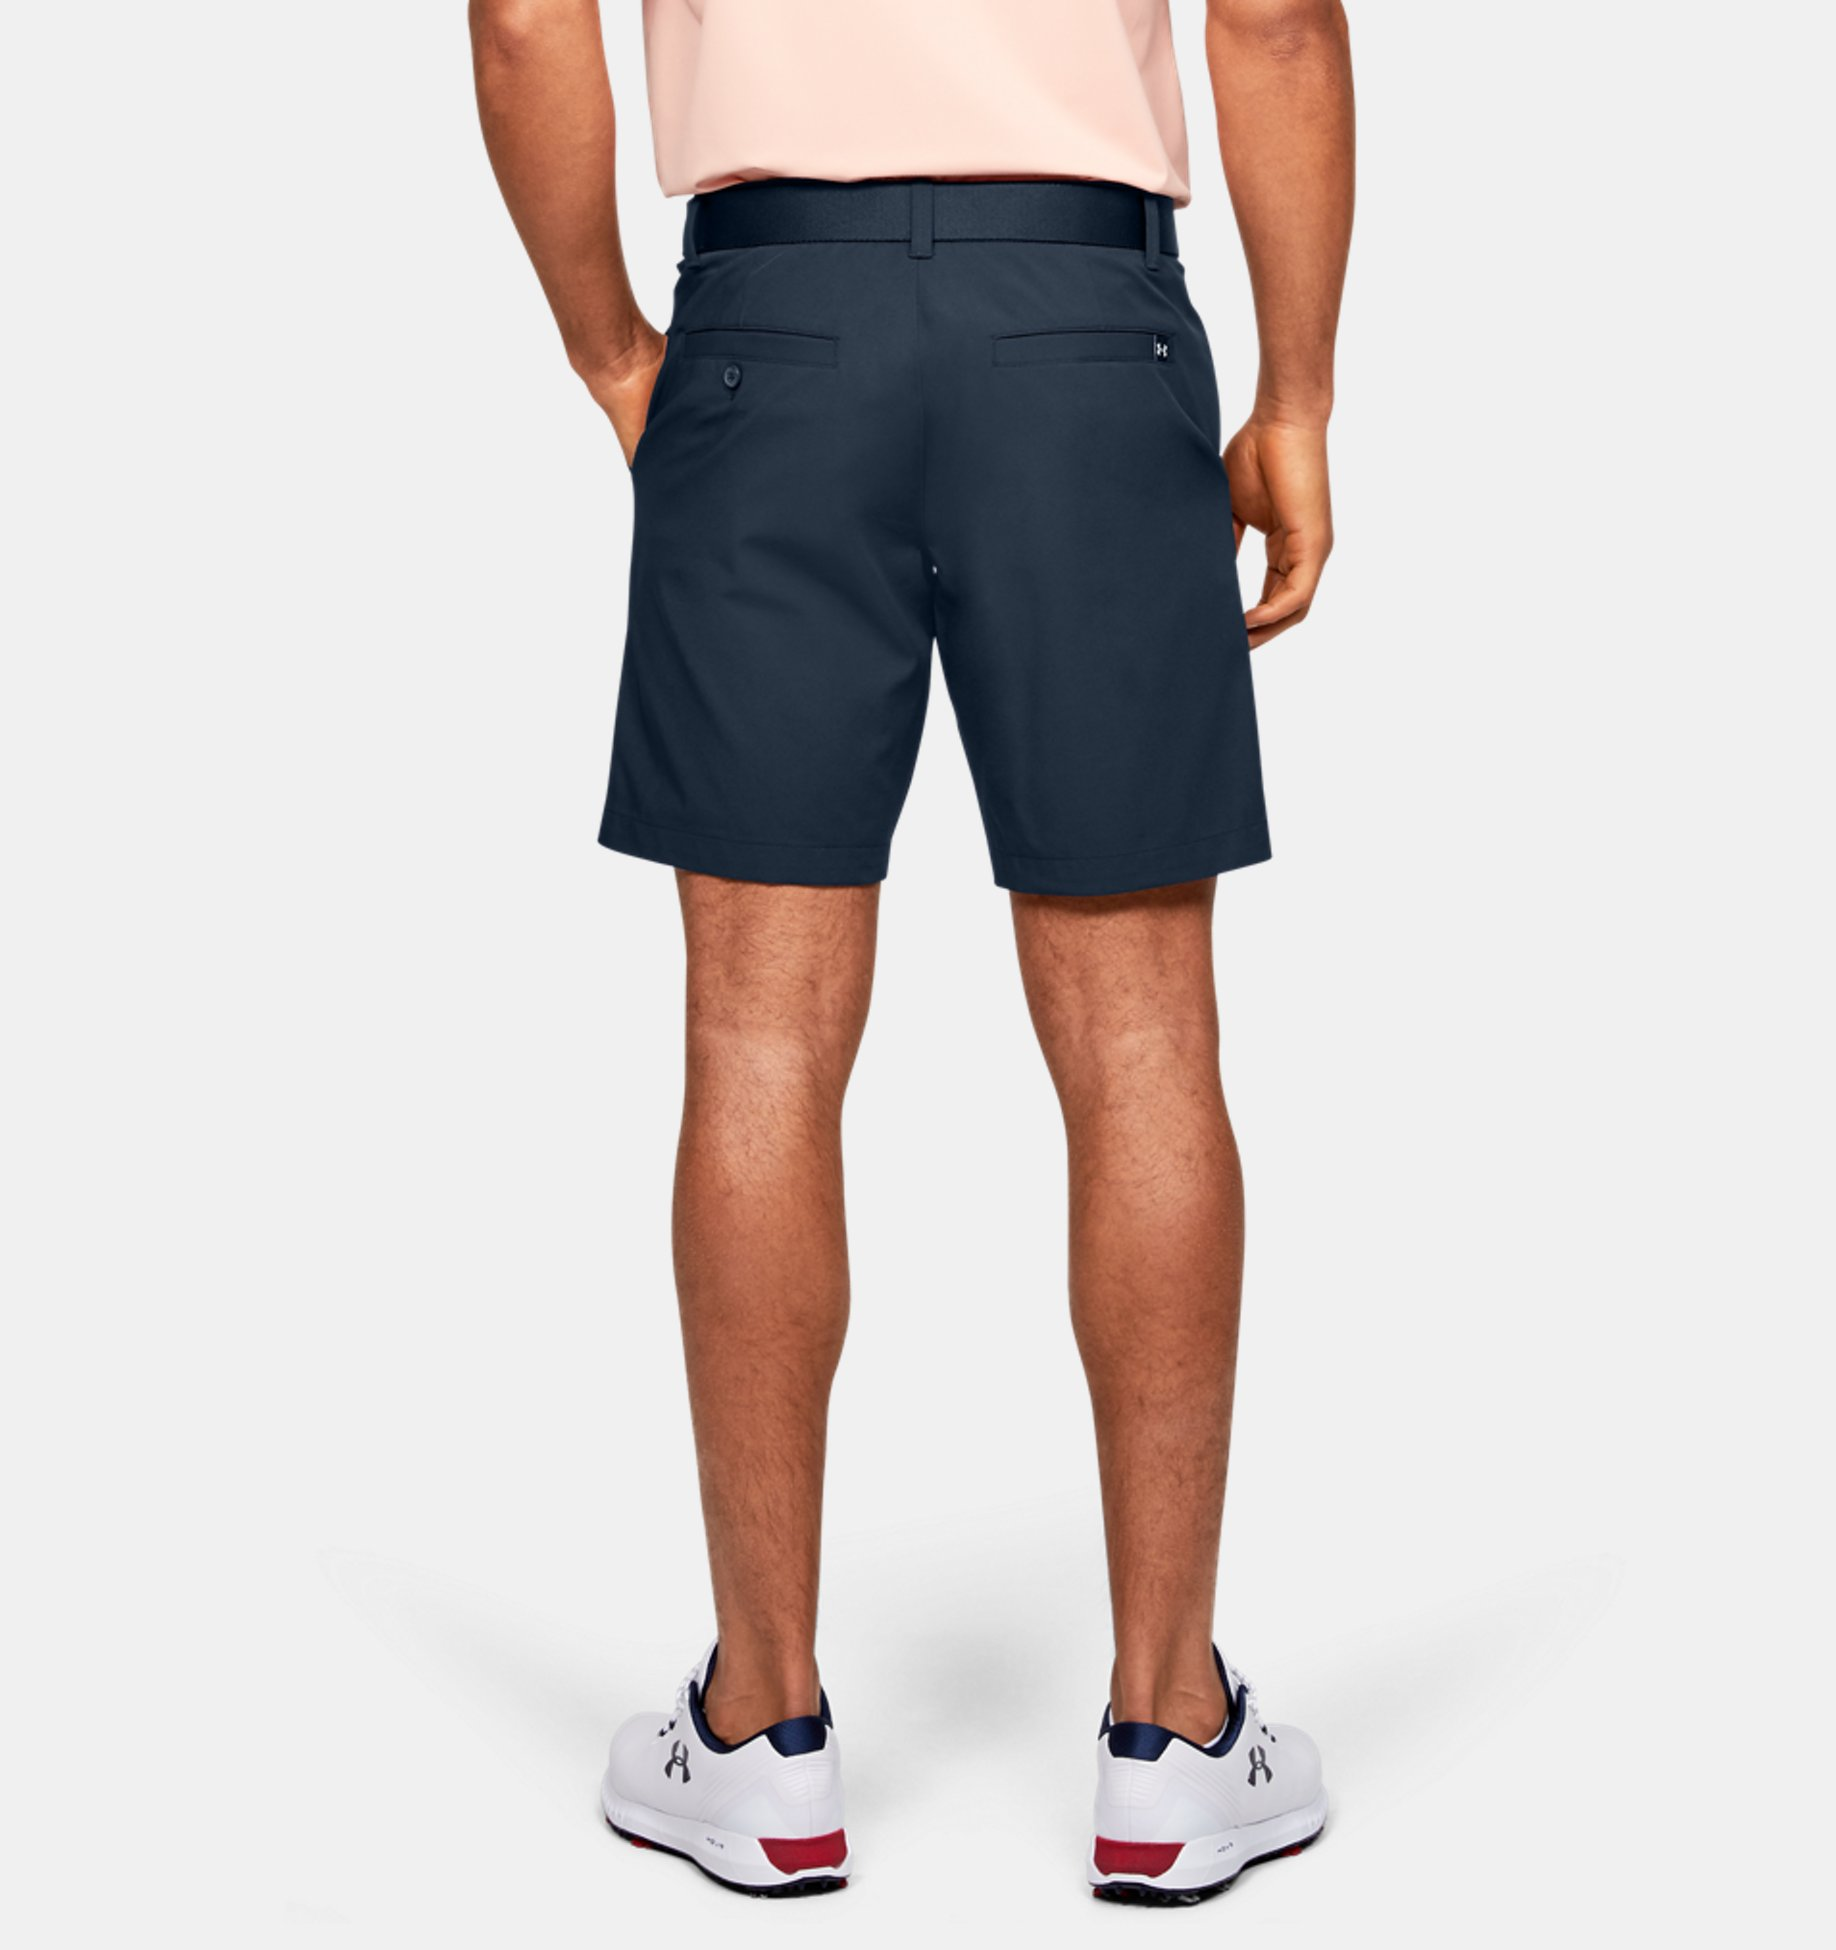 34 Best Fitness images in 2020   Jogger shorts, Shorts with